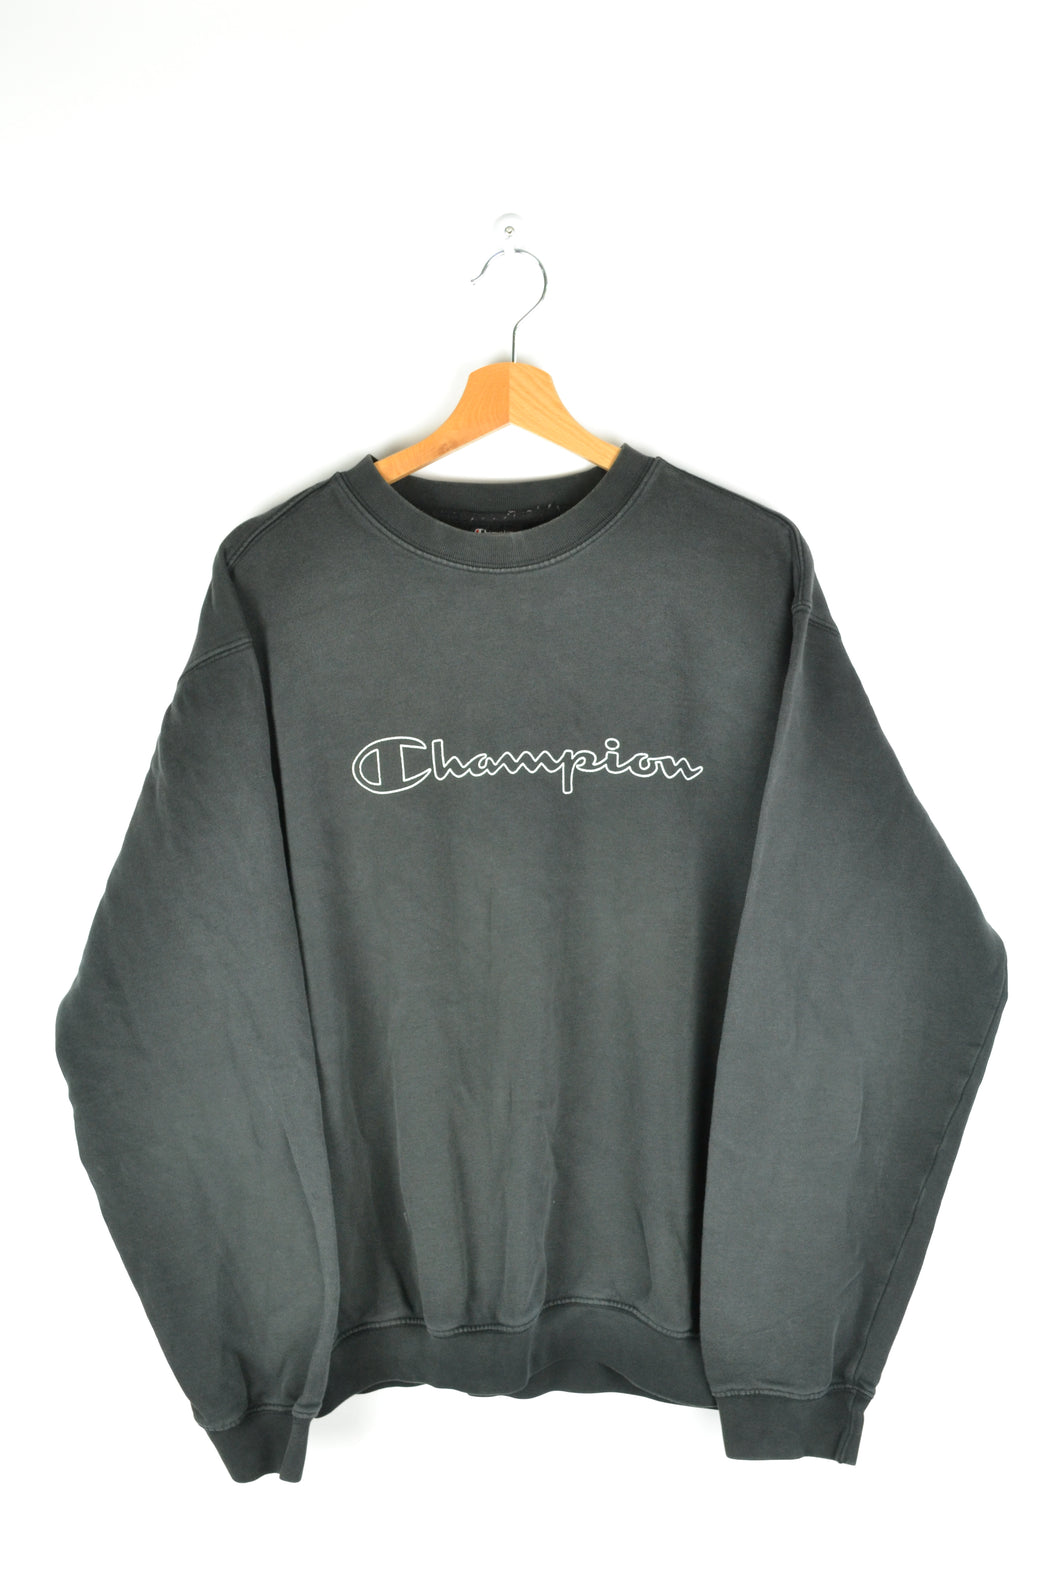 90s Black Champion Crewneck XL